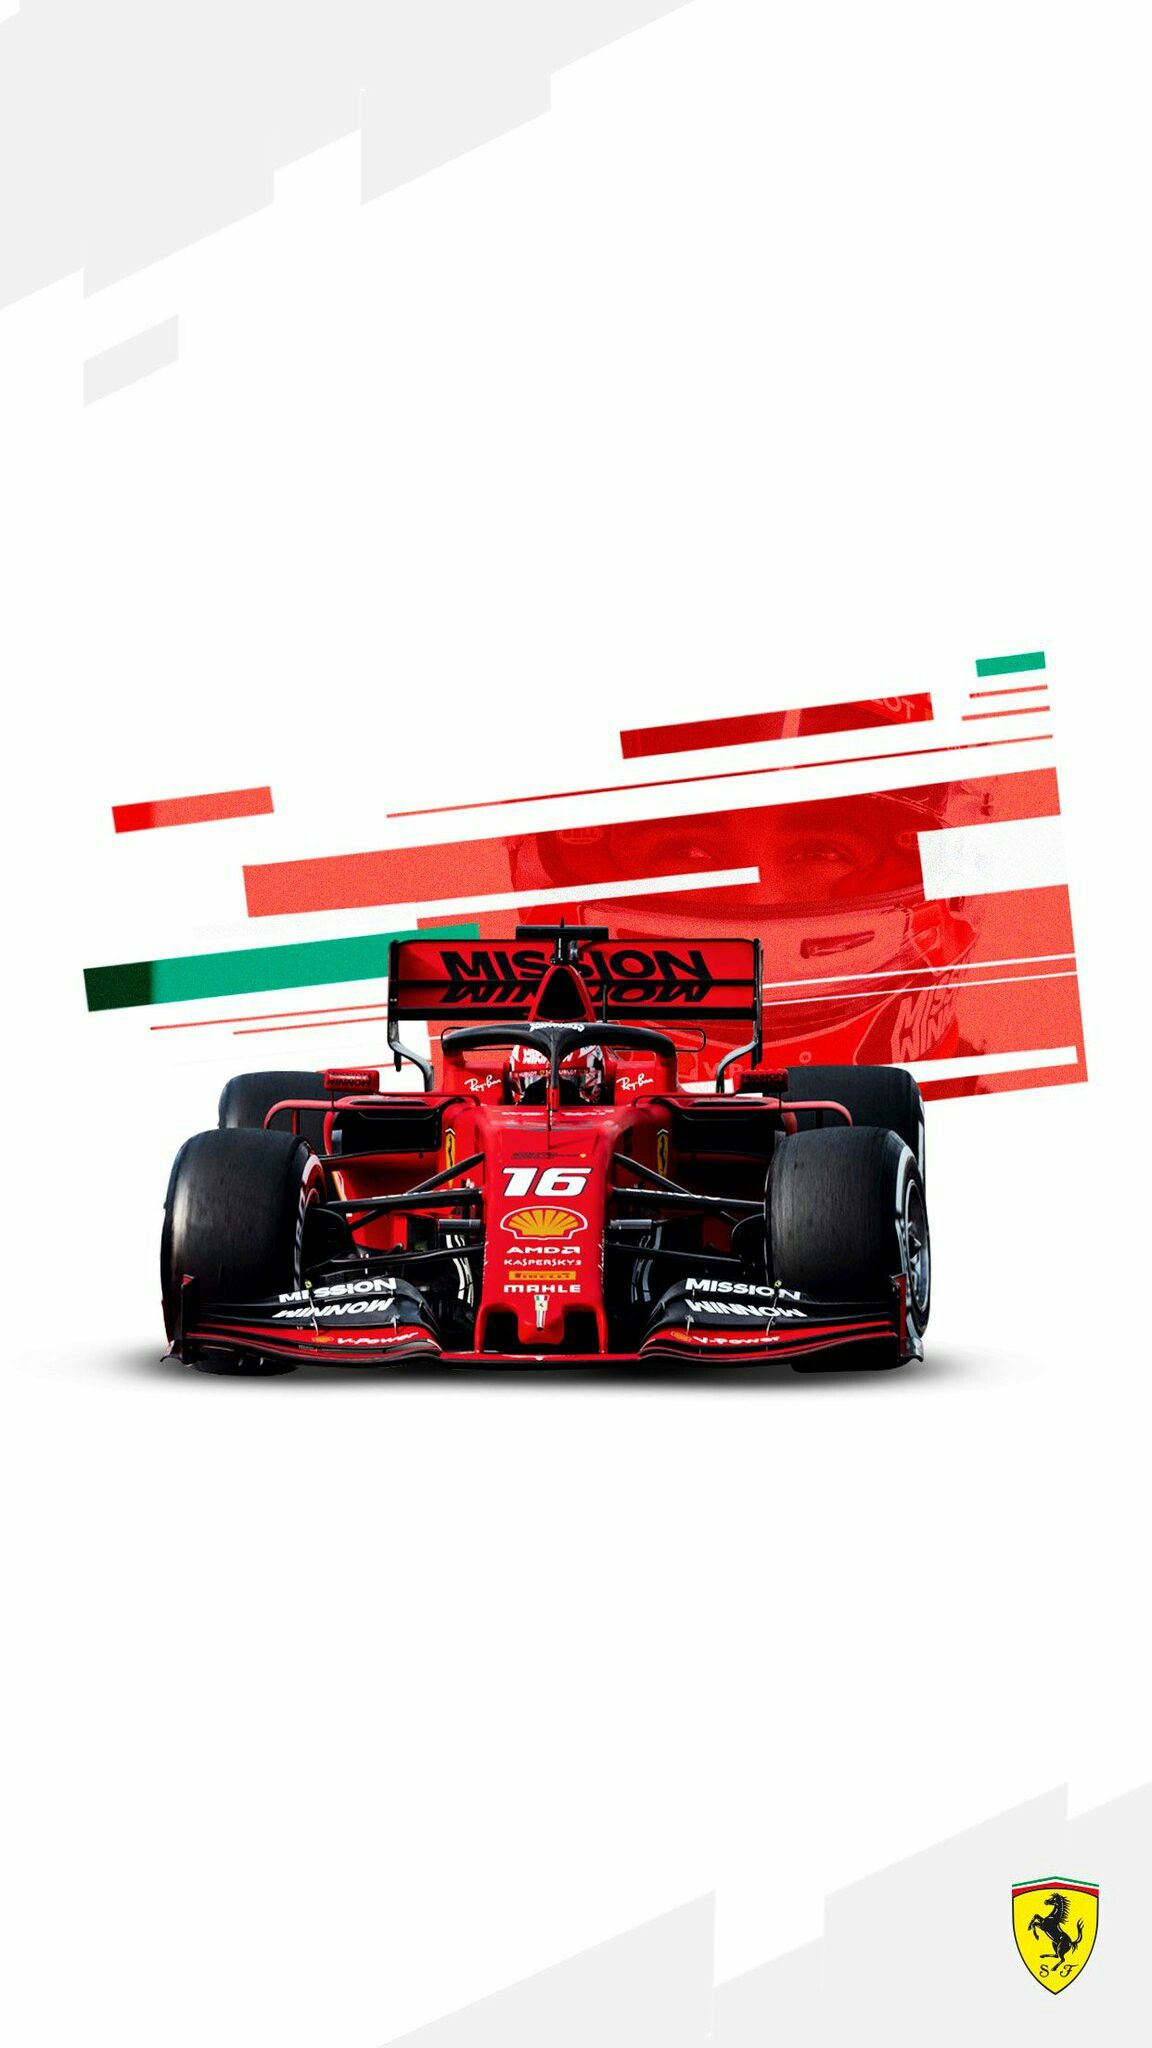 Scuderia Ferrari Wallpaper 1152x2048 Download Hd Wallpaper Wallpapertip